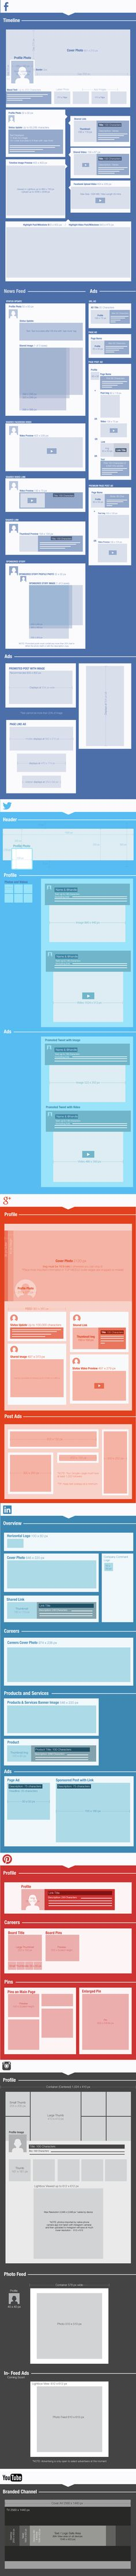 Uptown Treehouse Social Media Specs Graphic Design Infographic